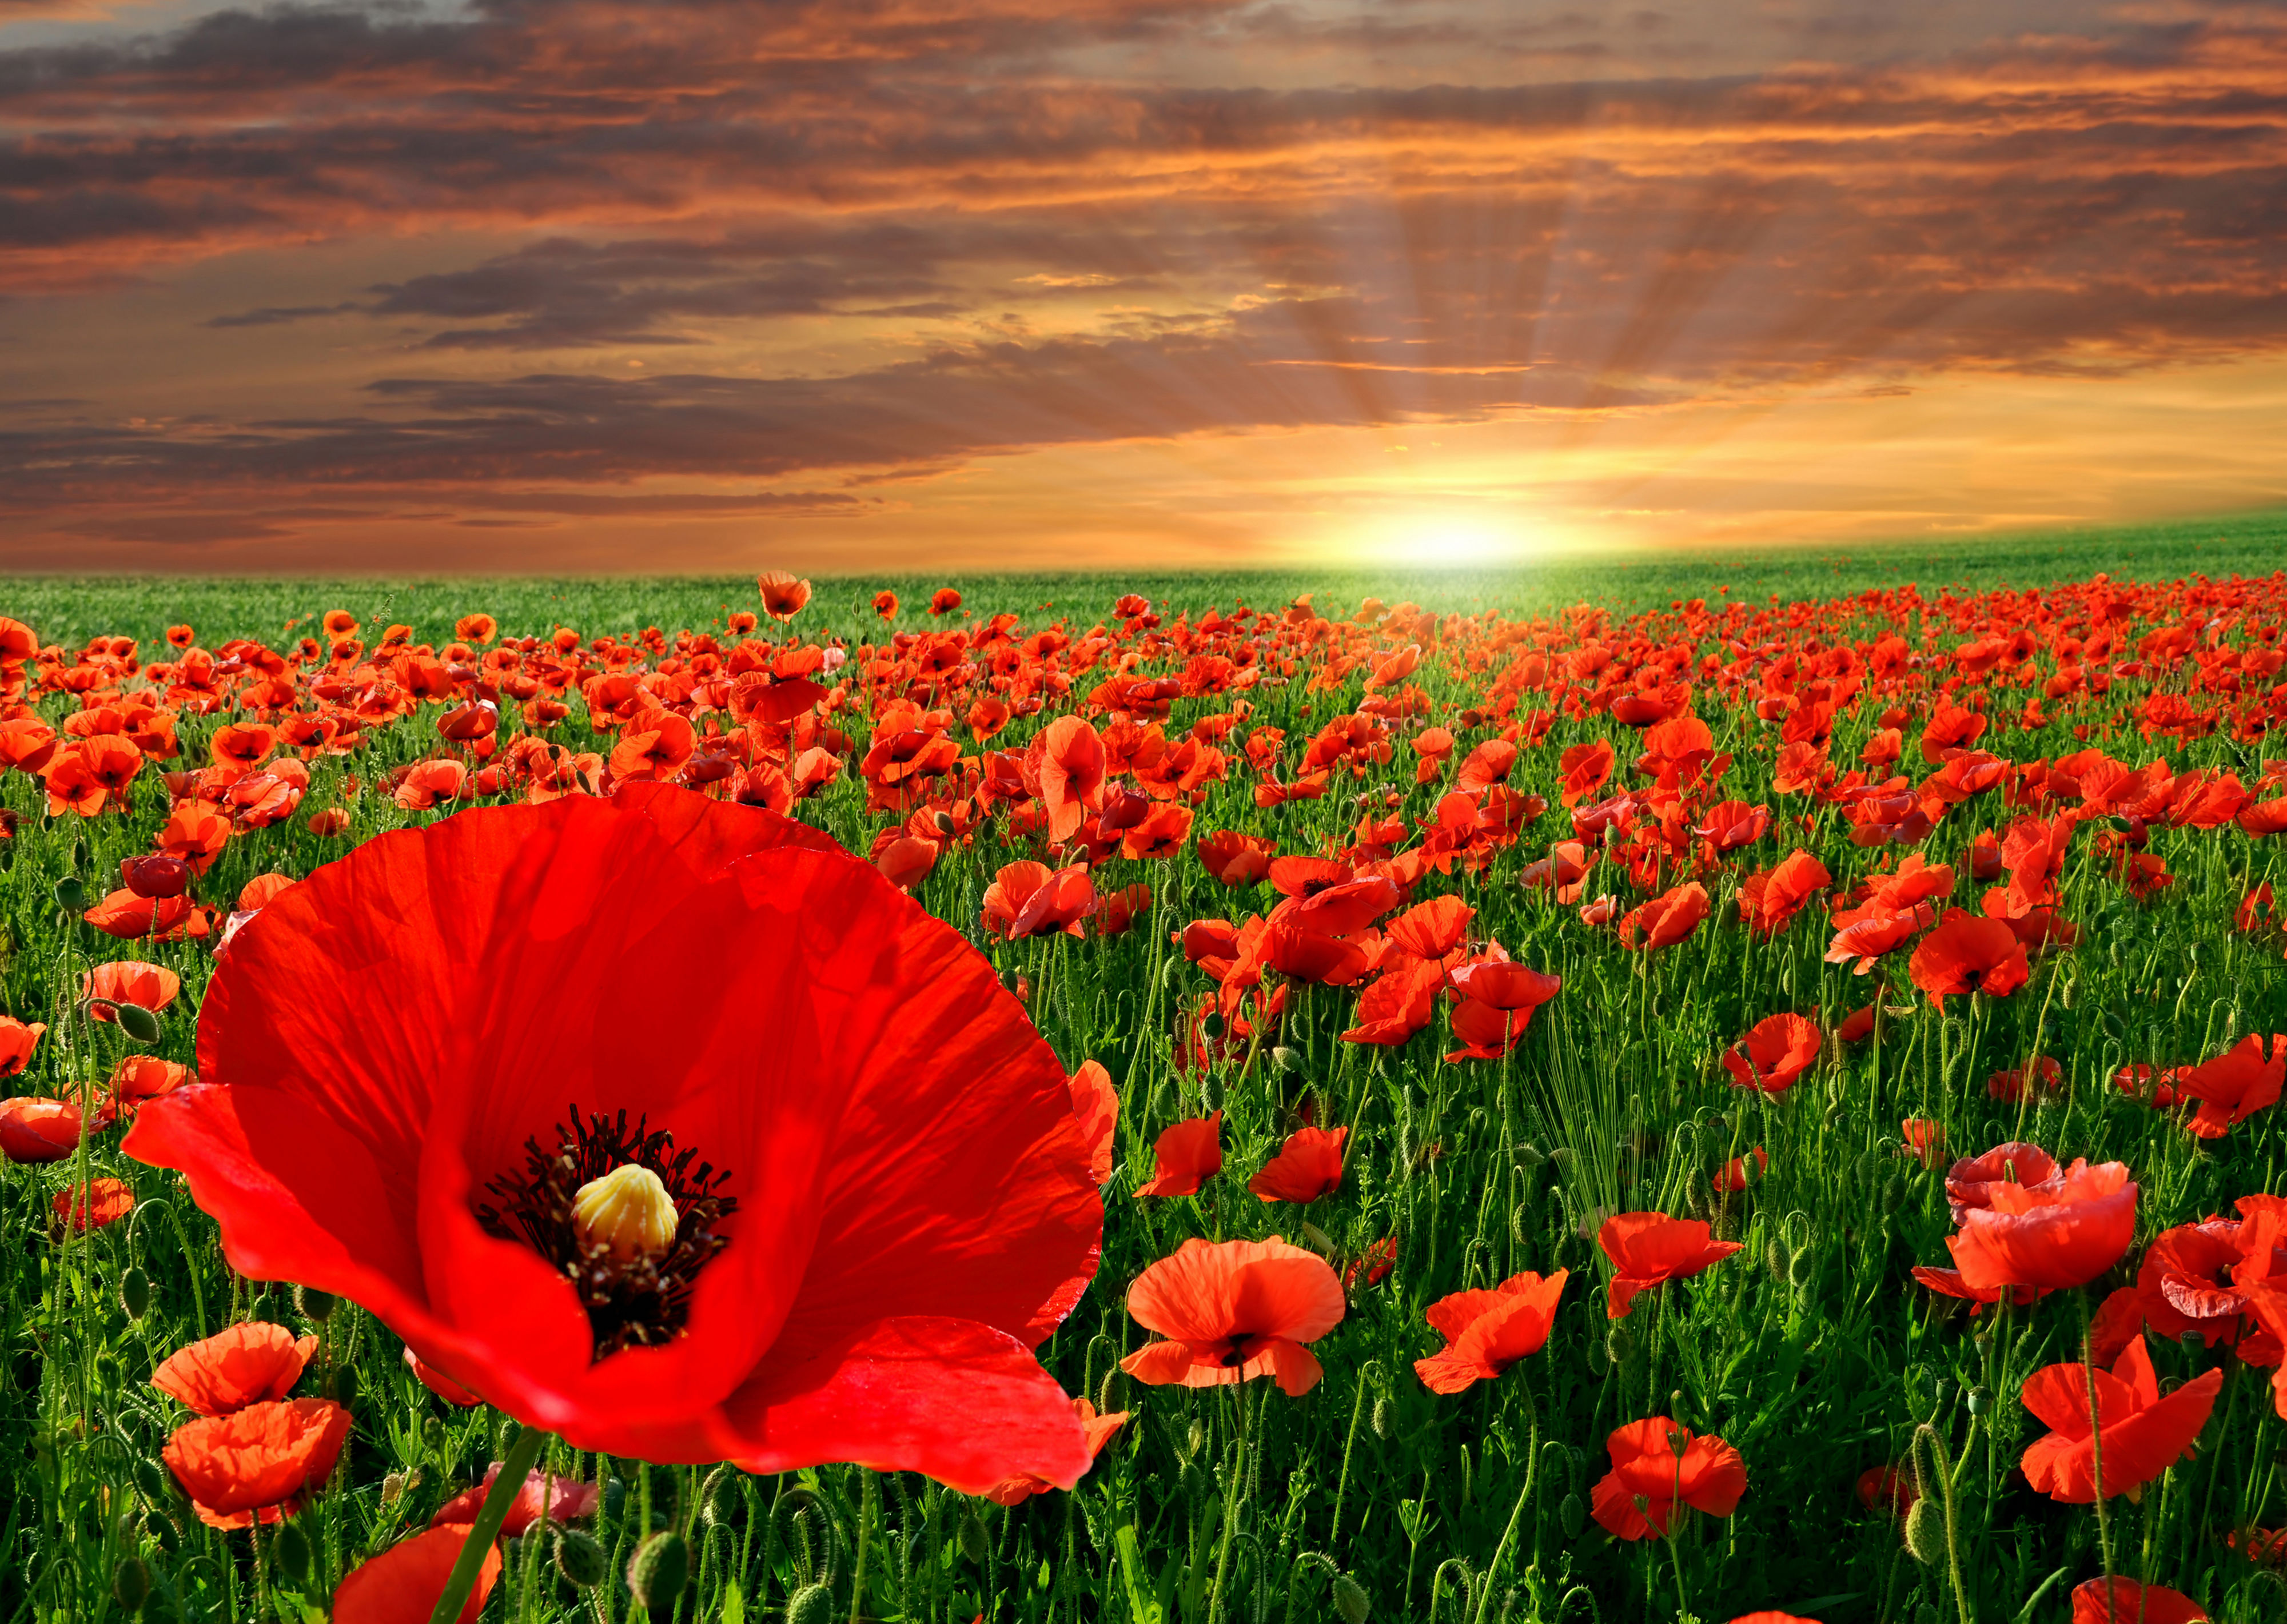 672 Poppy Hd Wallpapers Background Images Wallpaper Abyss